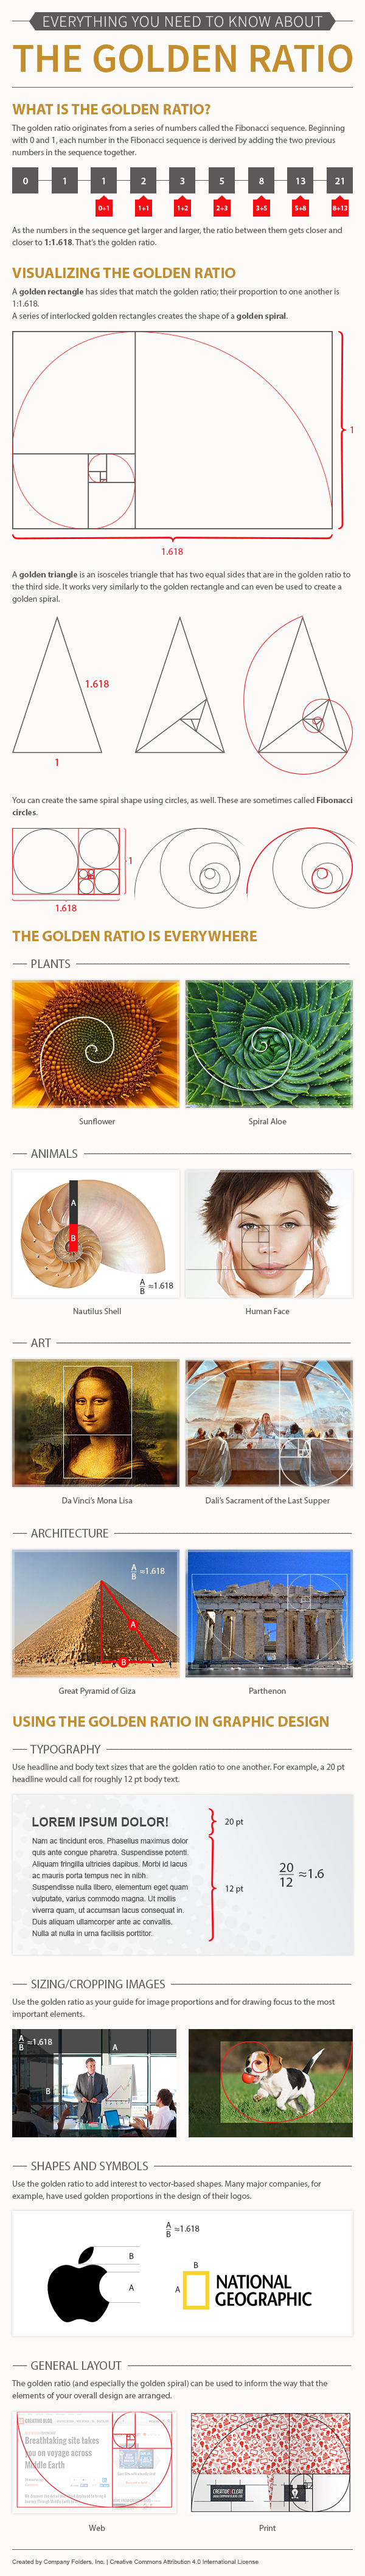 Poster design golden ratio - Everything You Need To Know About The Golden Ratio